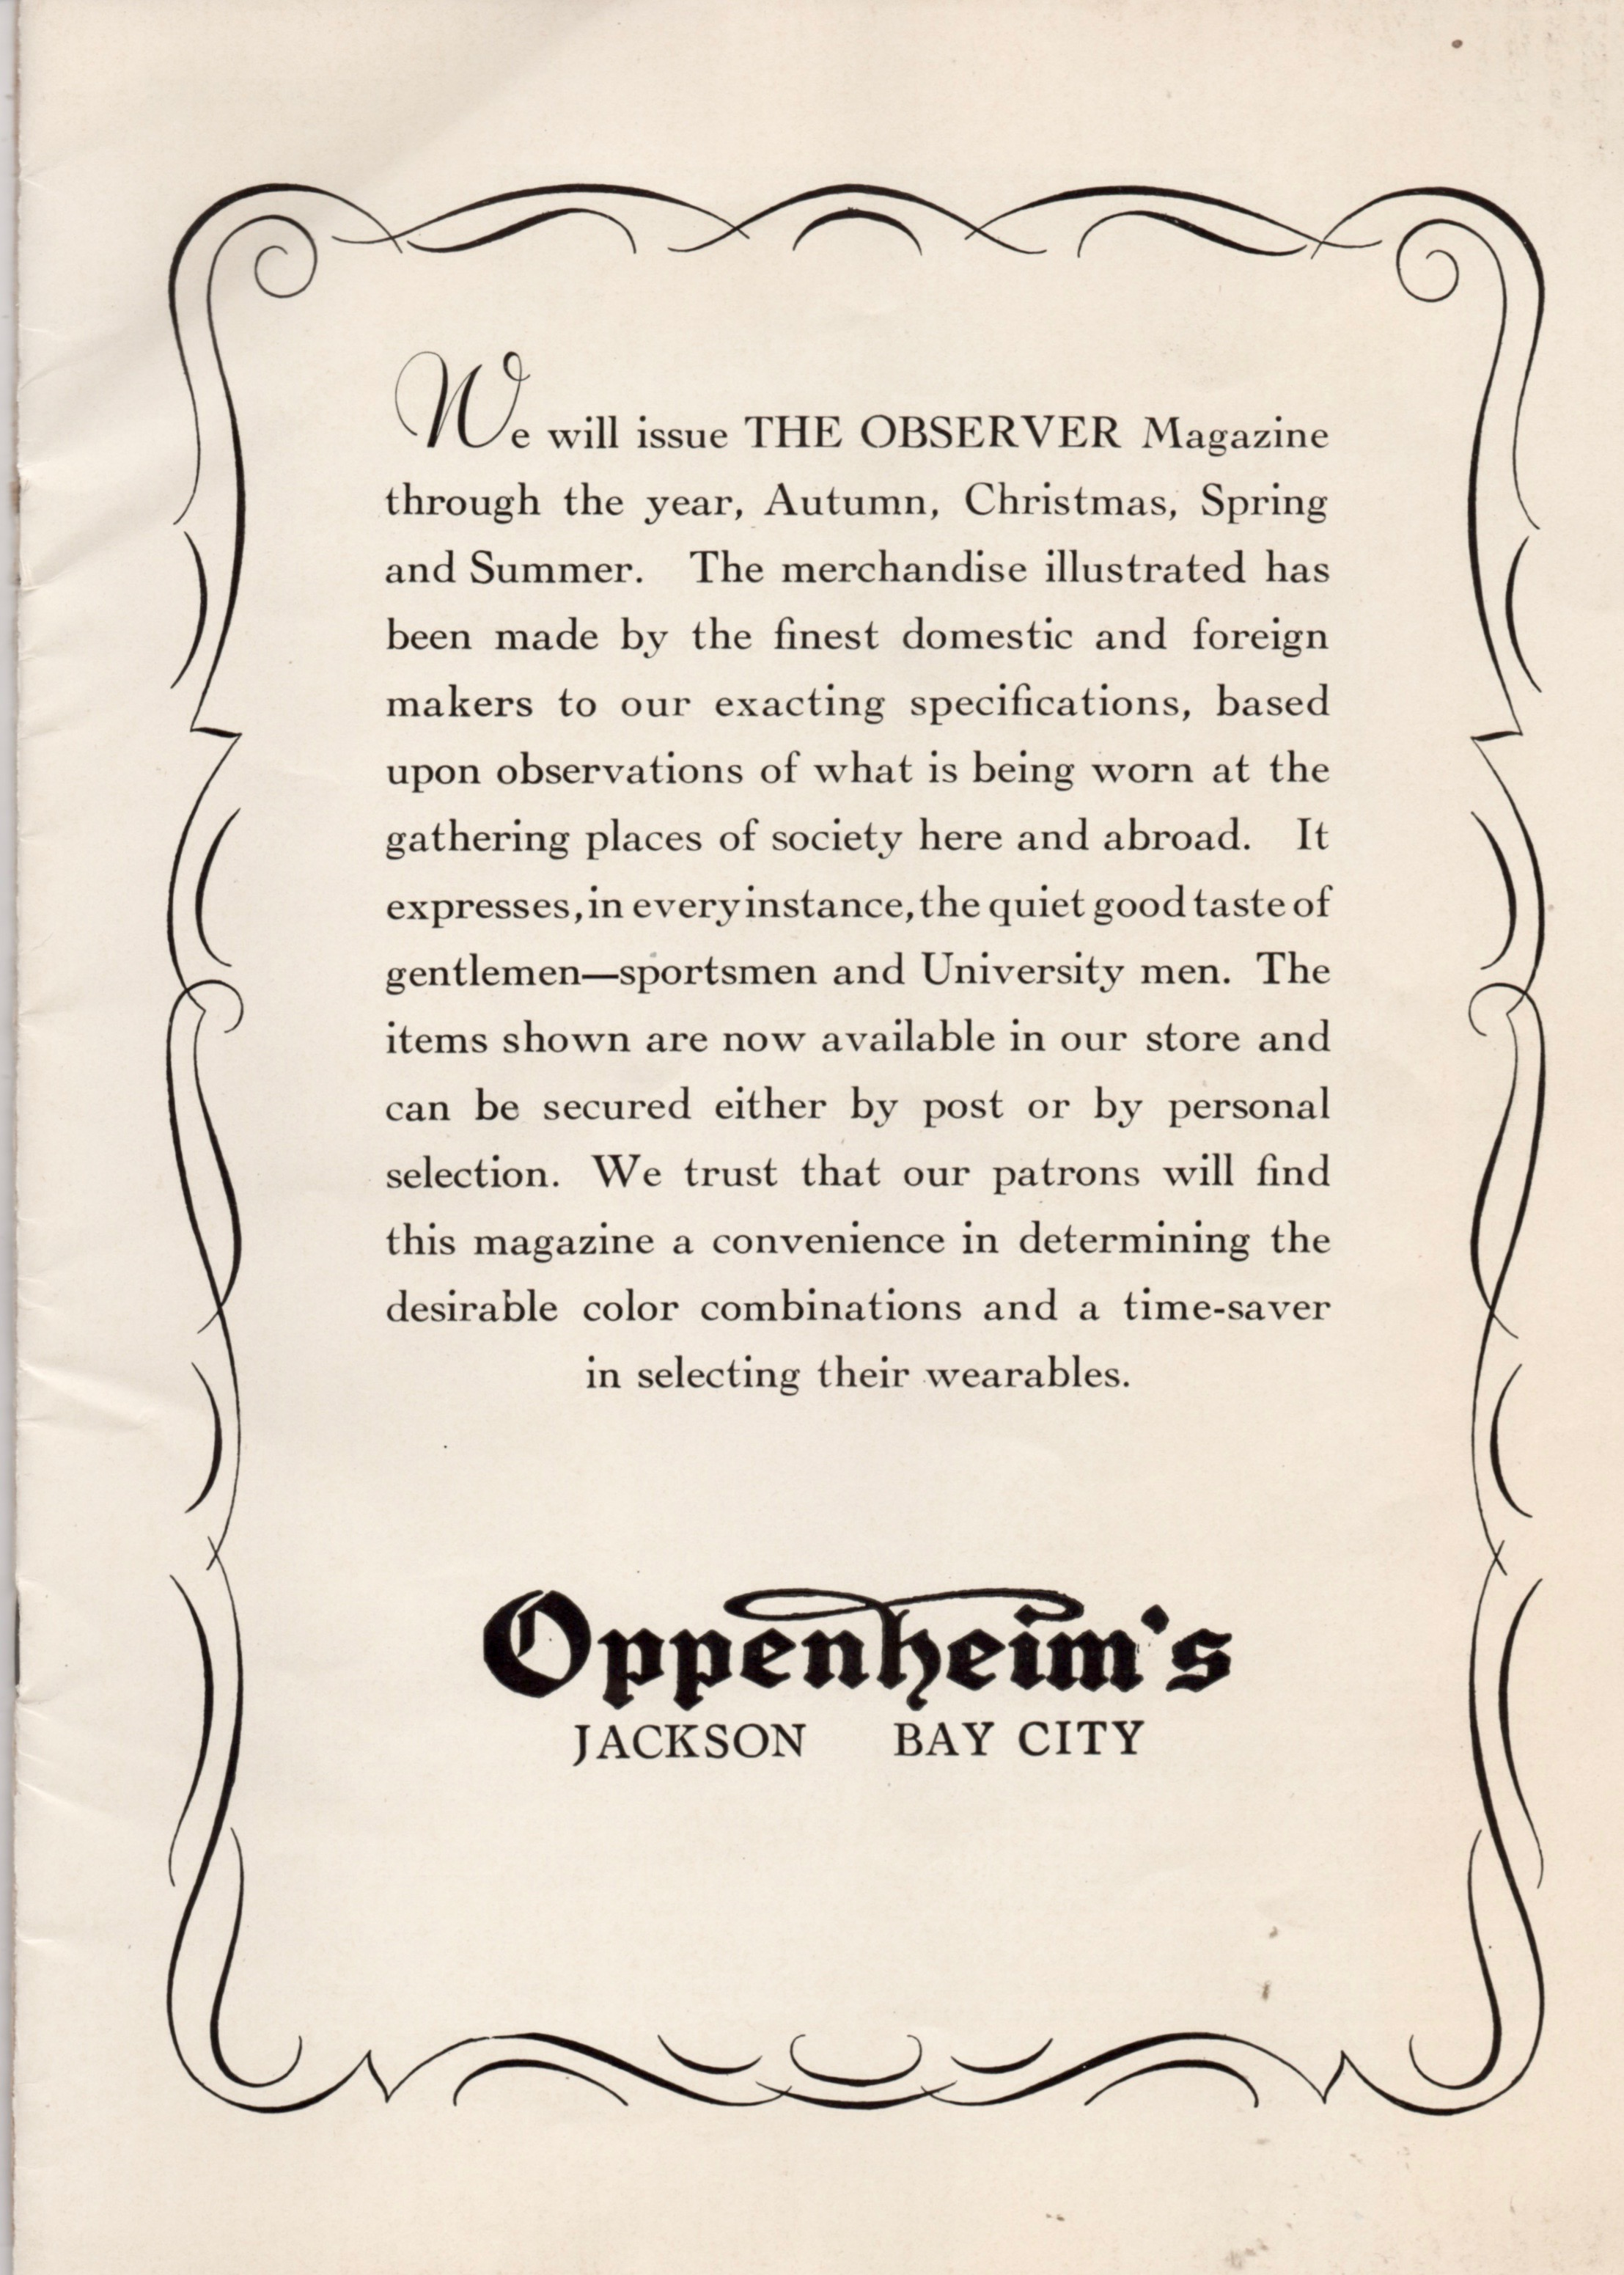 Oppenheim's clothing stores offered the finest in men's clothing.